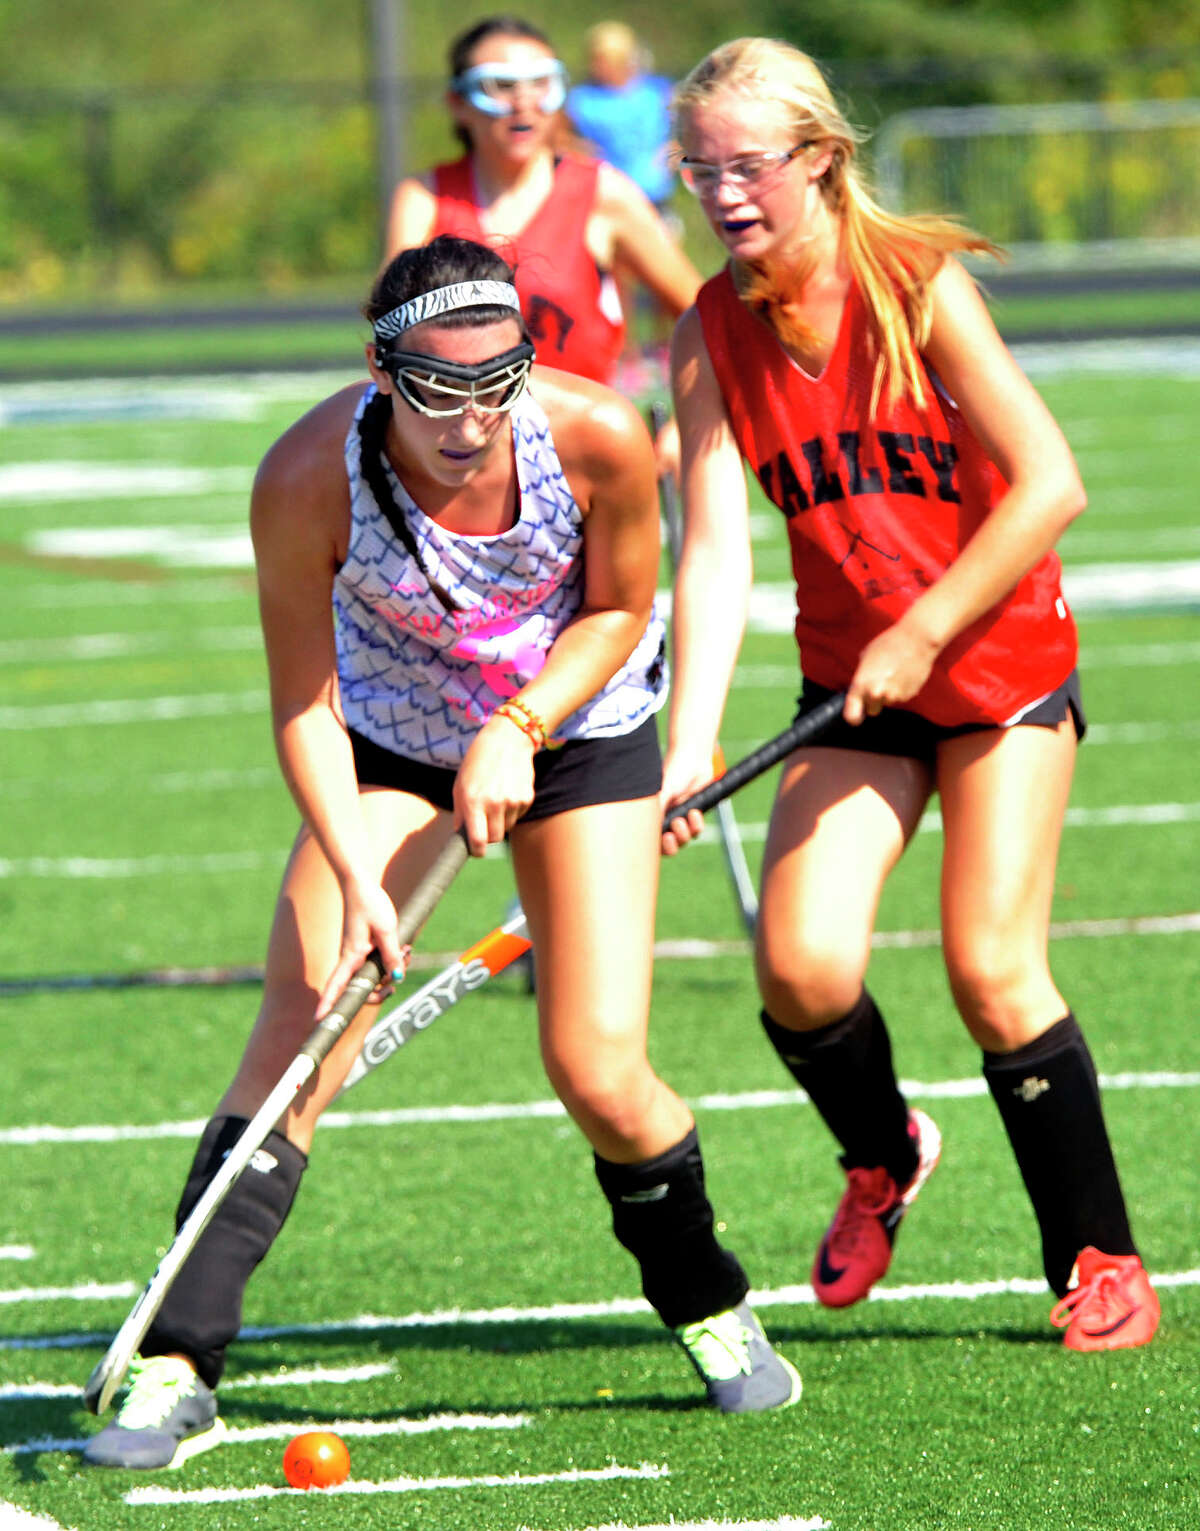 New Fairfield plays Valley Regional at the Mustang Mix-up Field Hockey Jamboree in Danbury Saturday, Sept. 1, 2012.